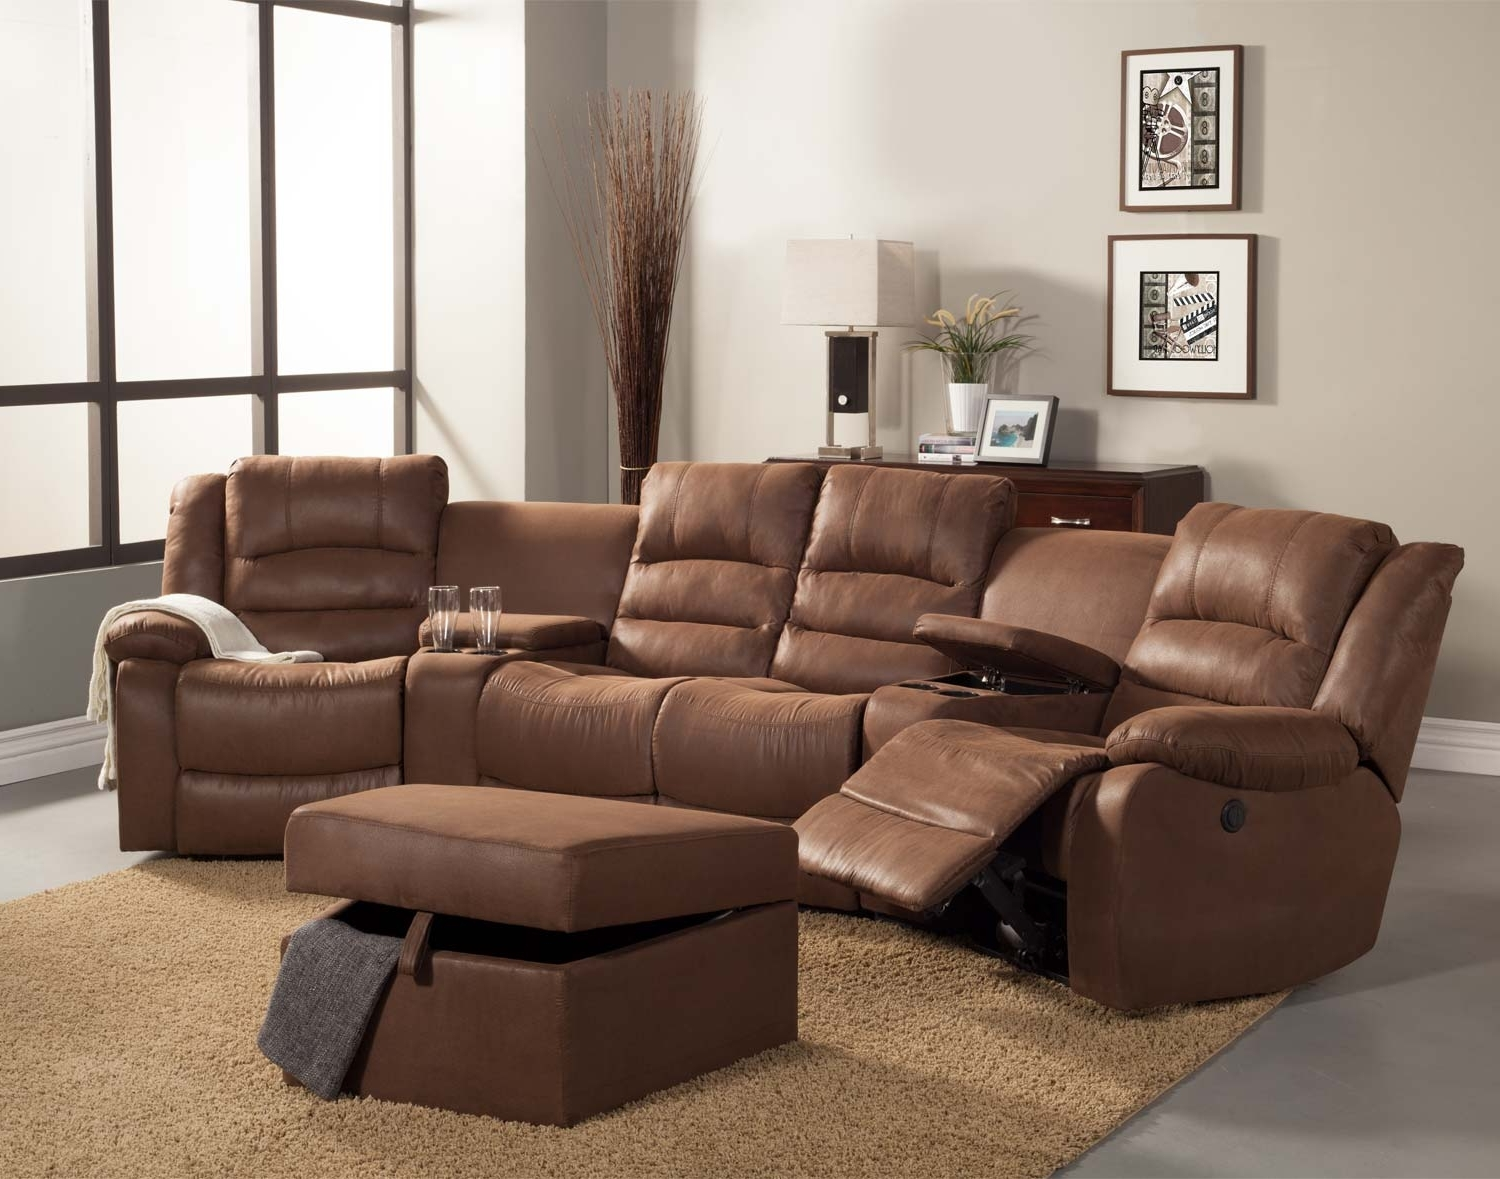 Preferred Joplin Mo Sectional Sofas With Regard To Homelegance Tucker Sectional Sofa Set – Brown – Bomber Jacket (View 7 of 15)